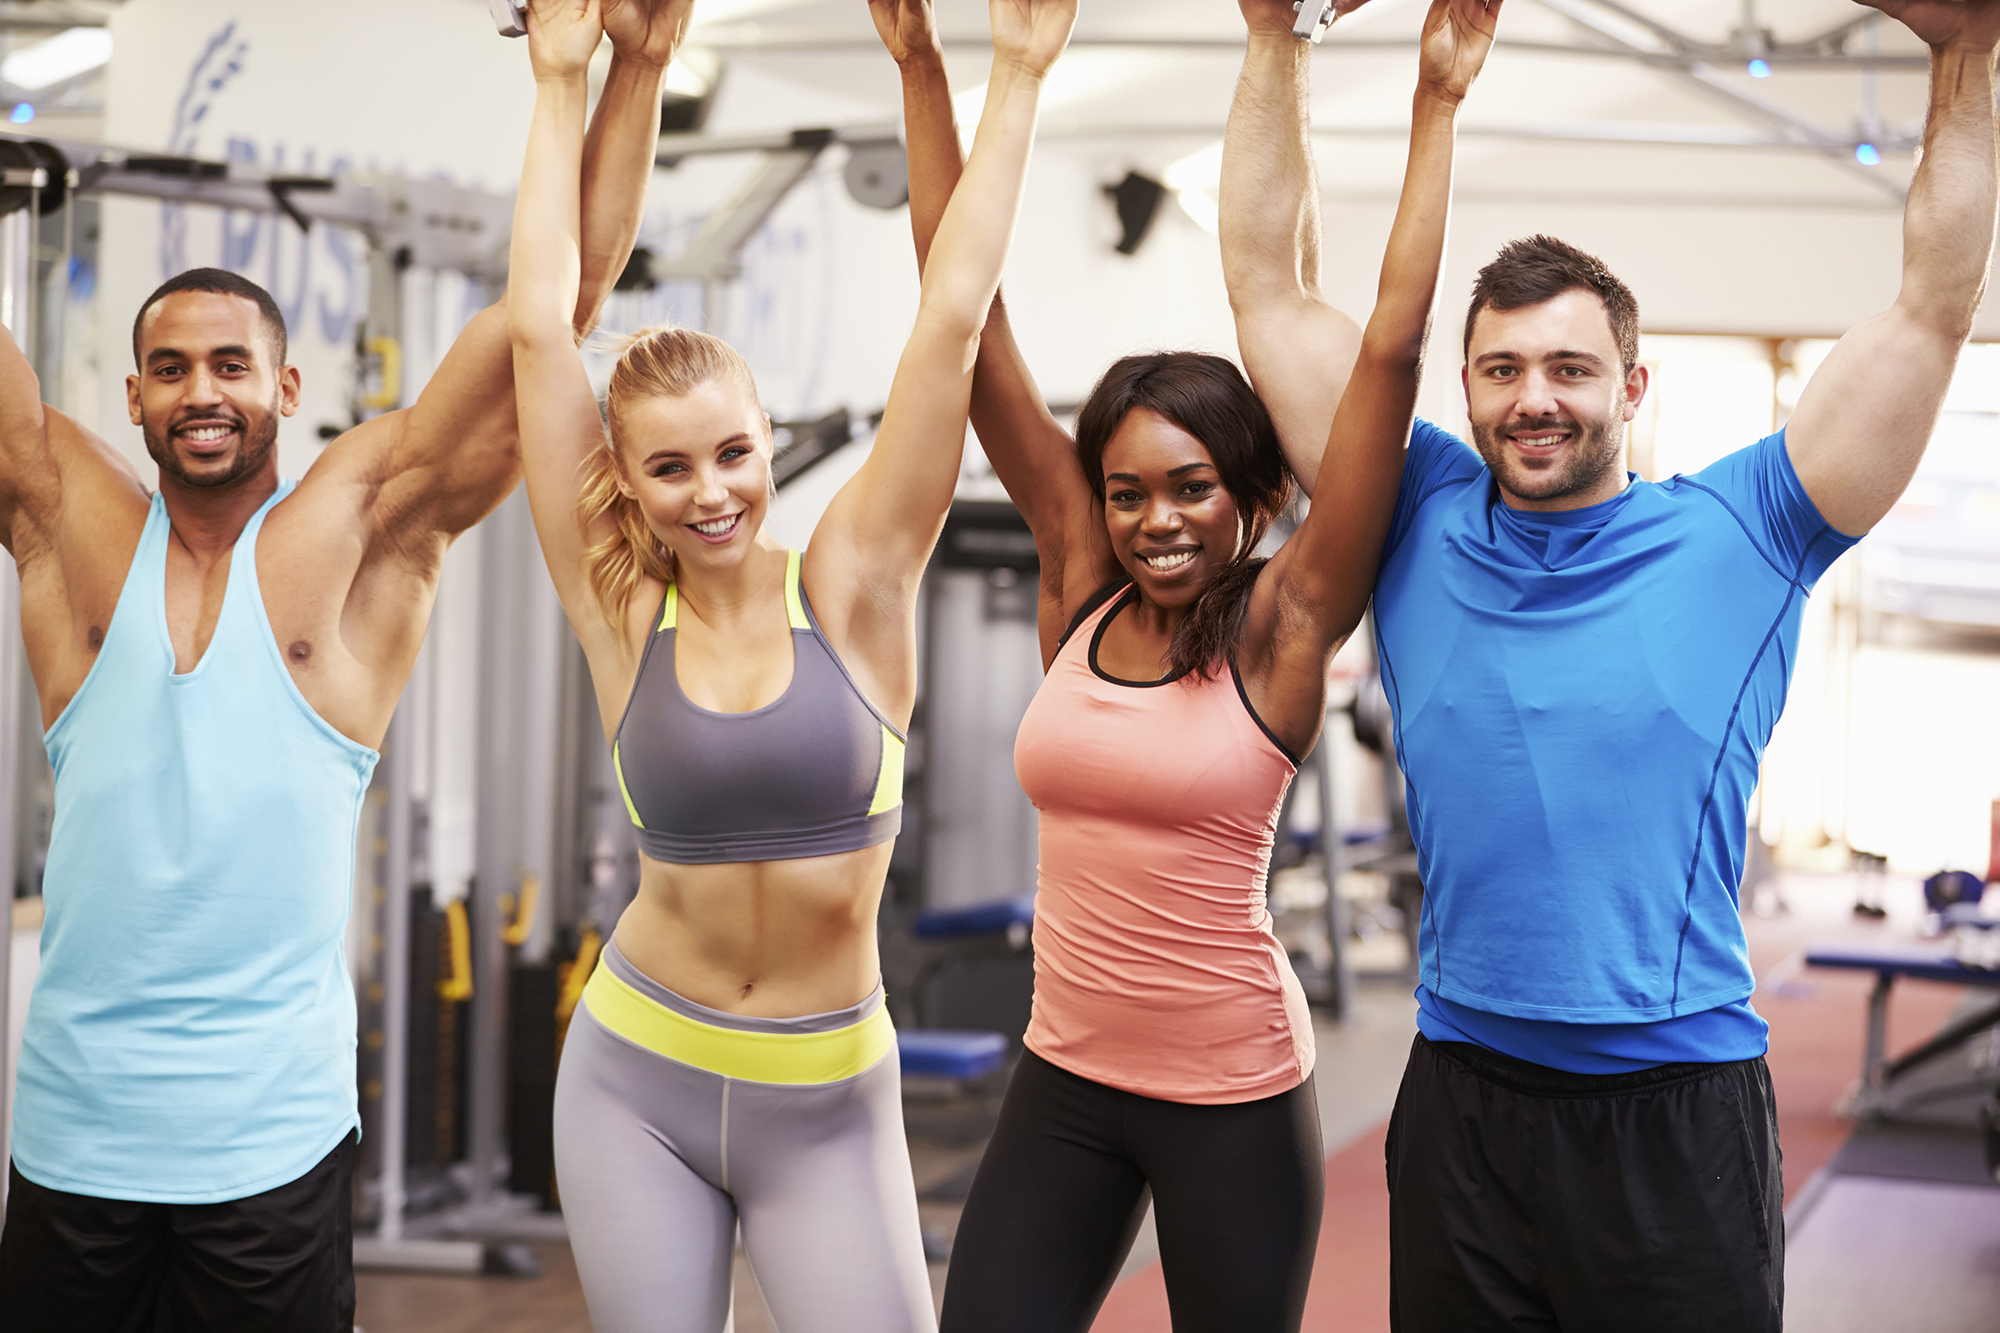 TRP Launches Customer Engagement Academy with State of the Industry Survey on Gym Member Engagement